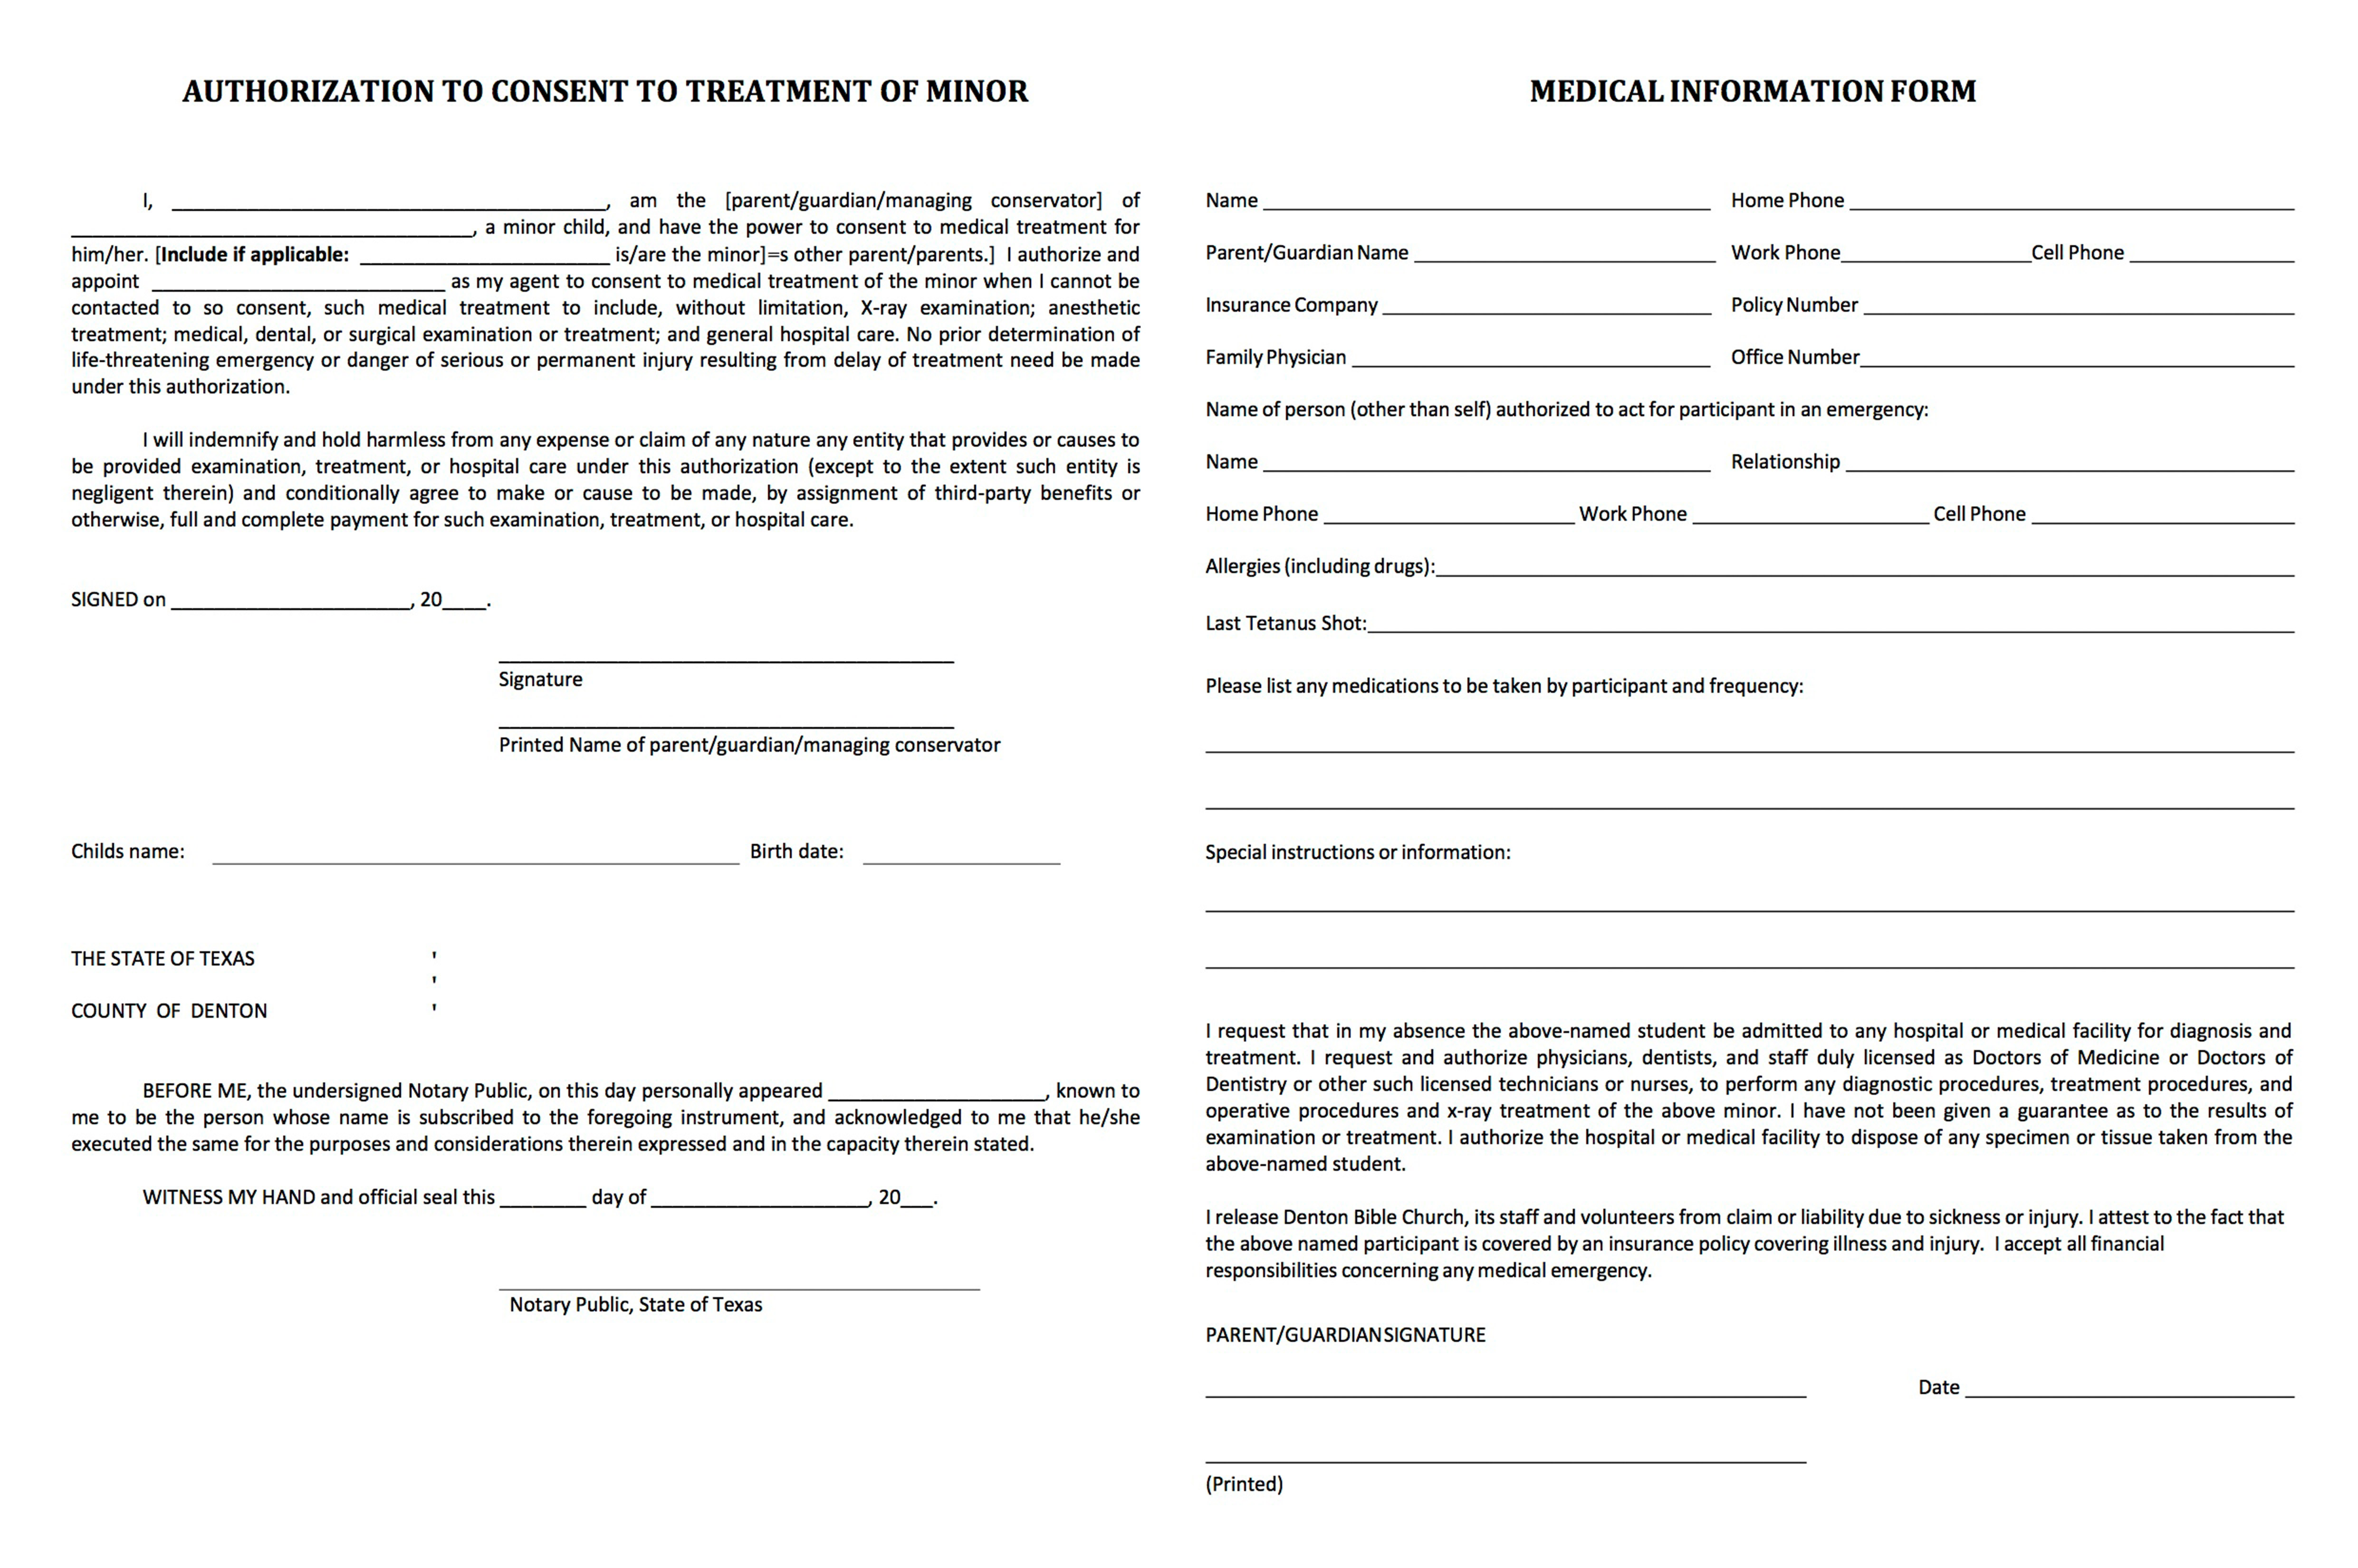 Denton Bible Student Ministries  Liability Waiver Form